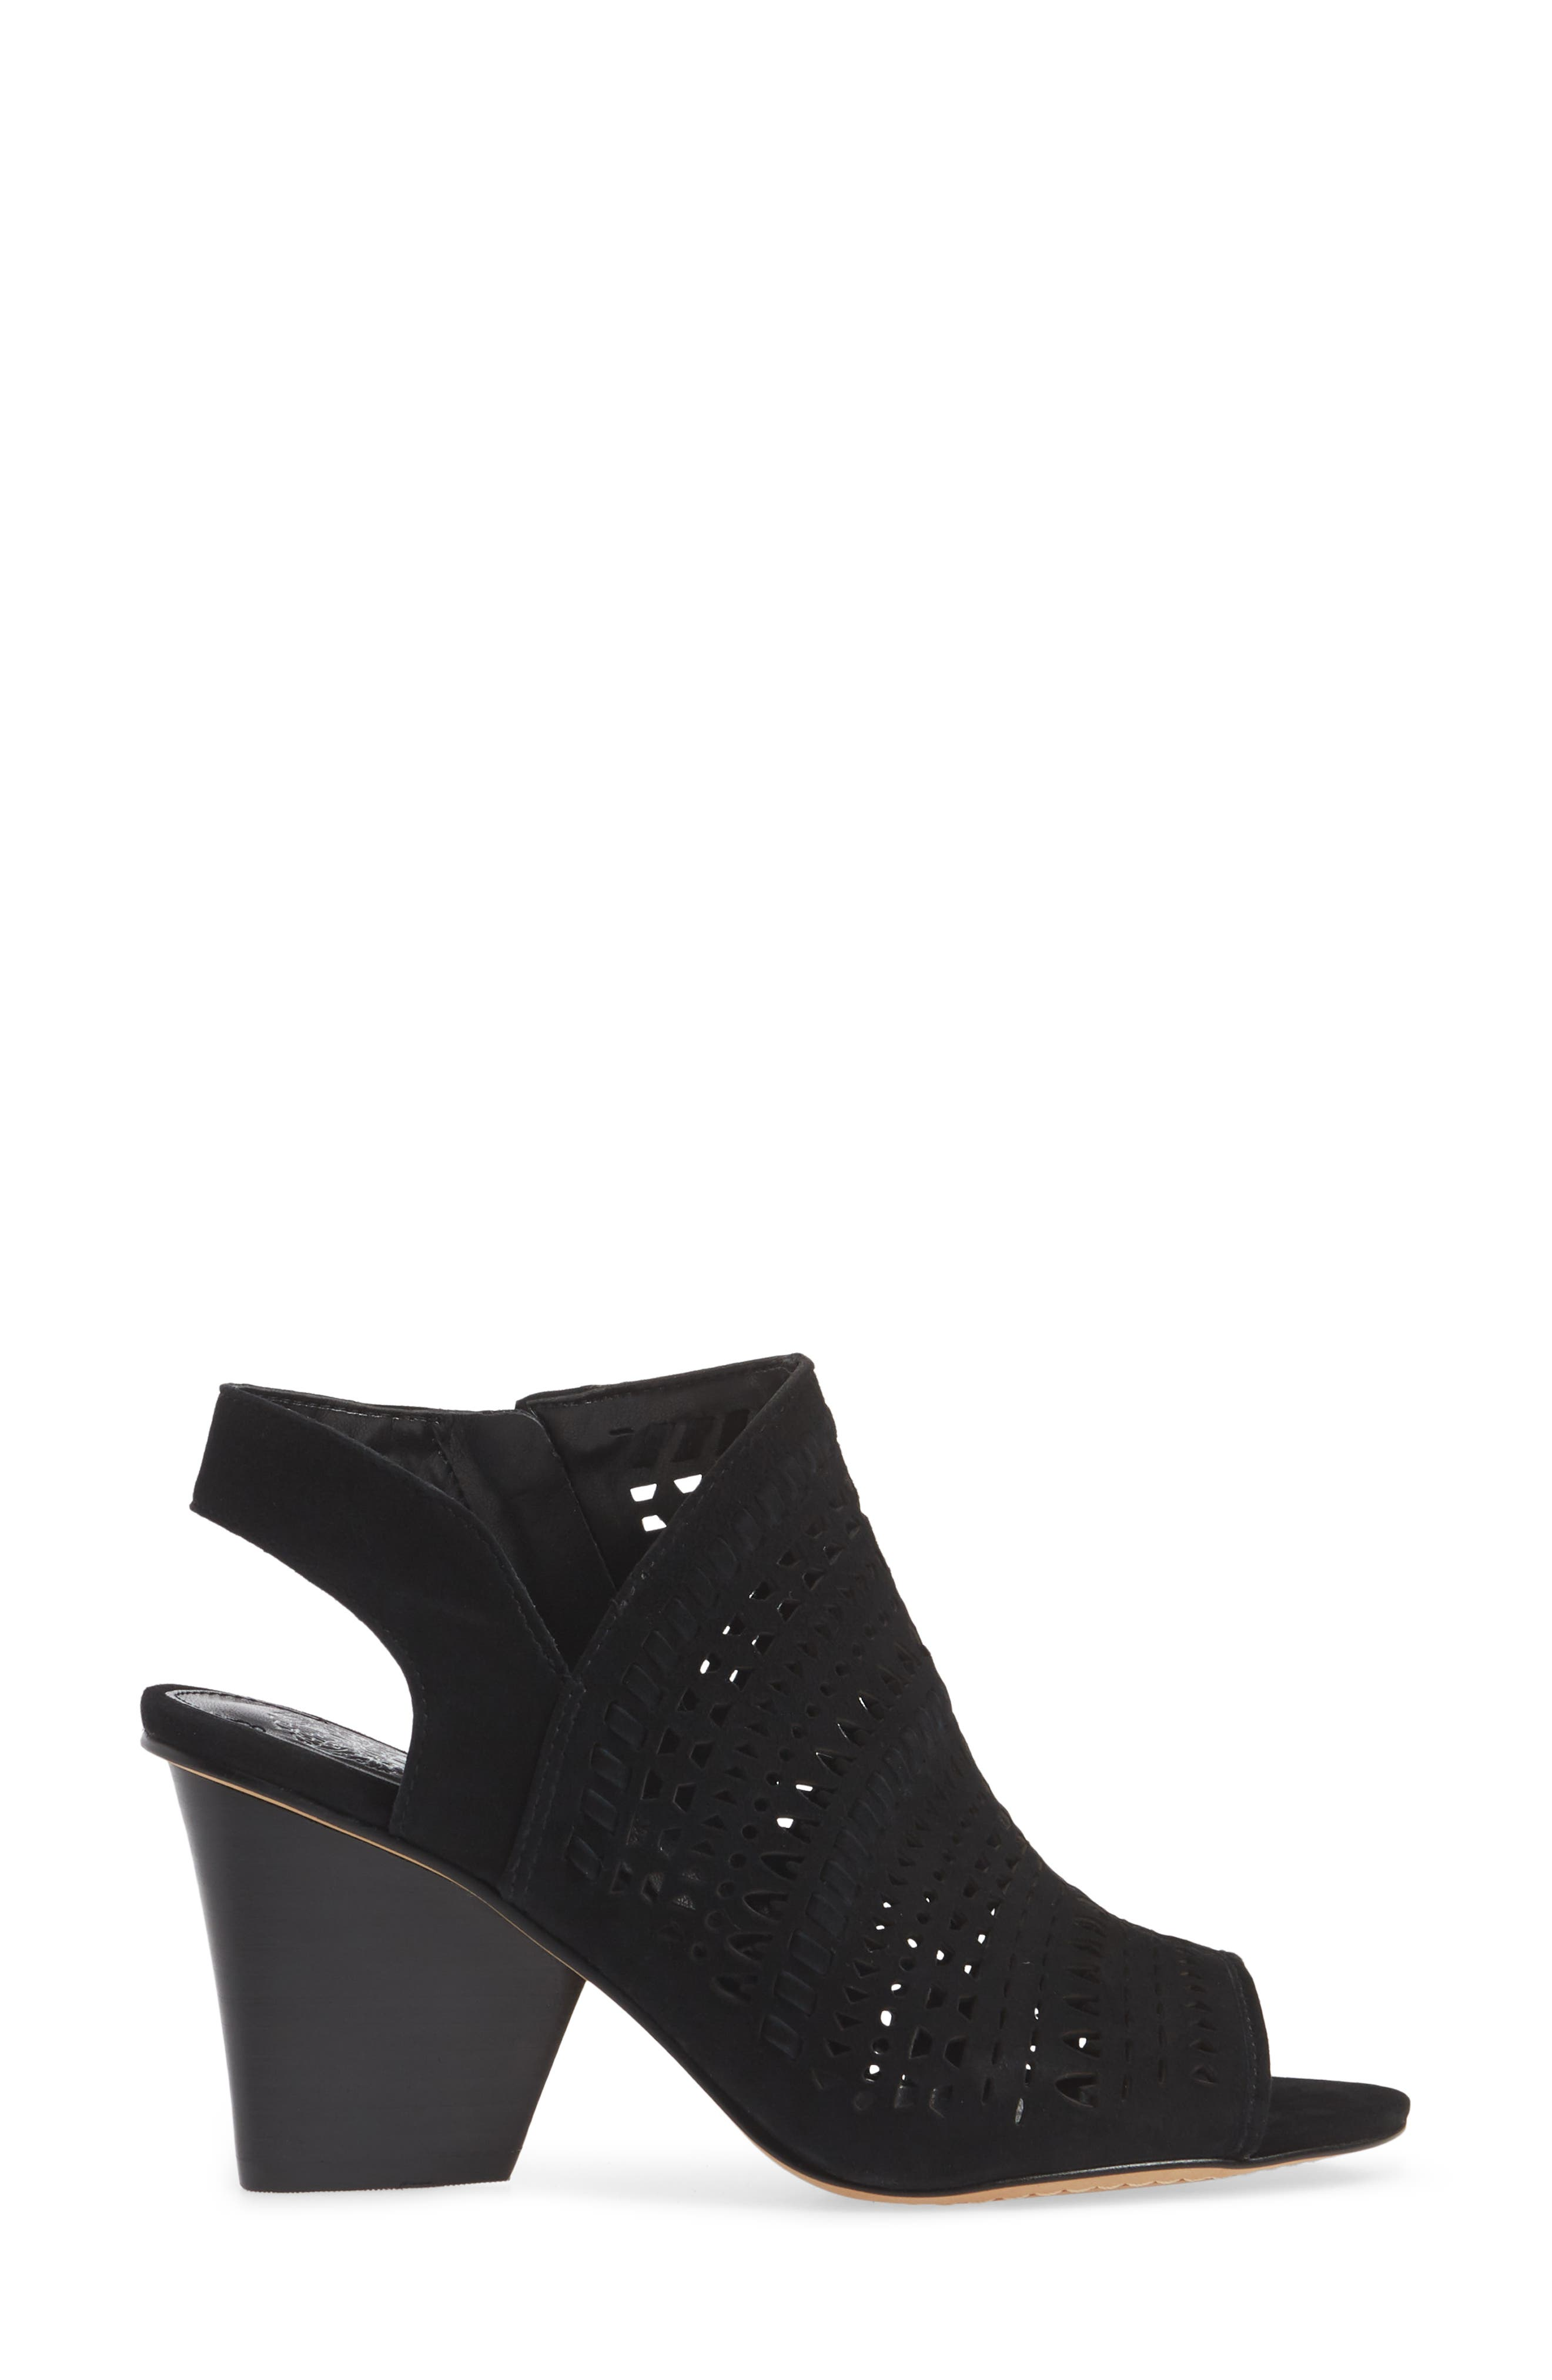 VINCE CAMUTO, Derechie Perforated Shield Sandal, Alternate thumbnail 3, color, BLACK SUEDE